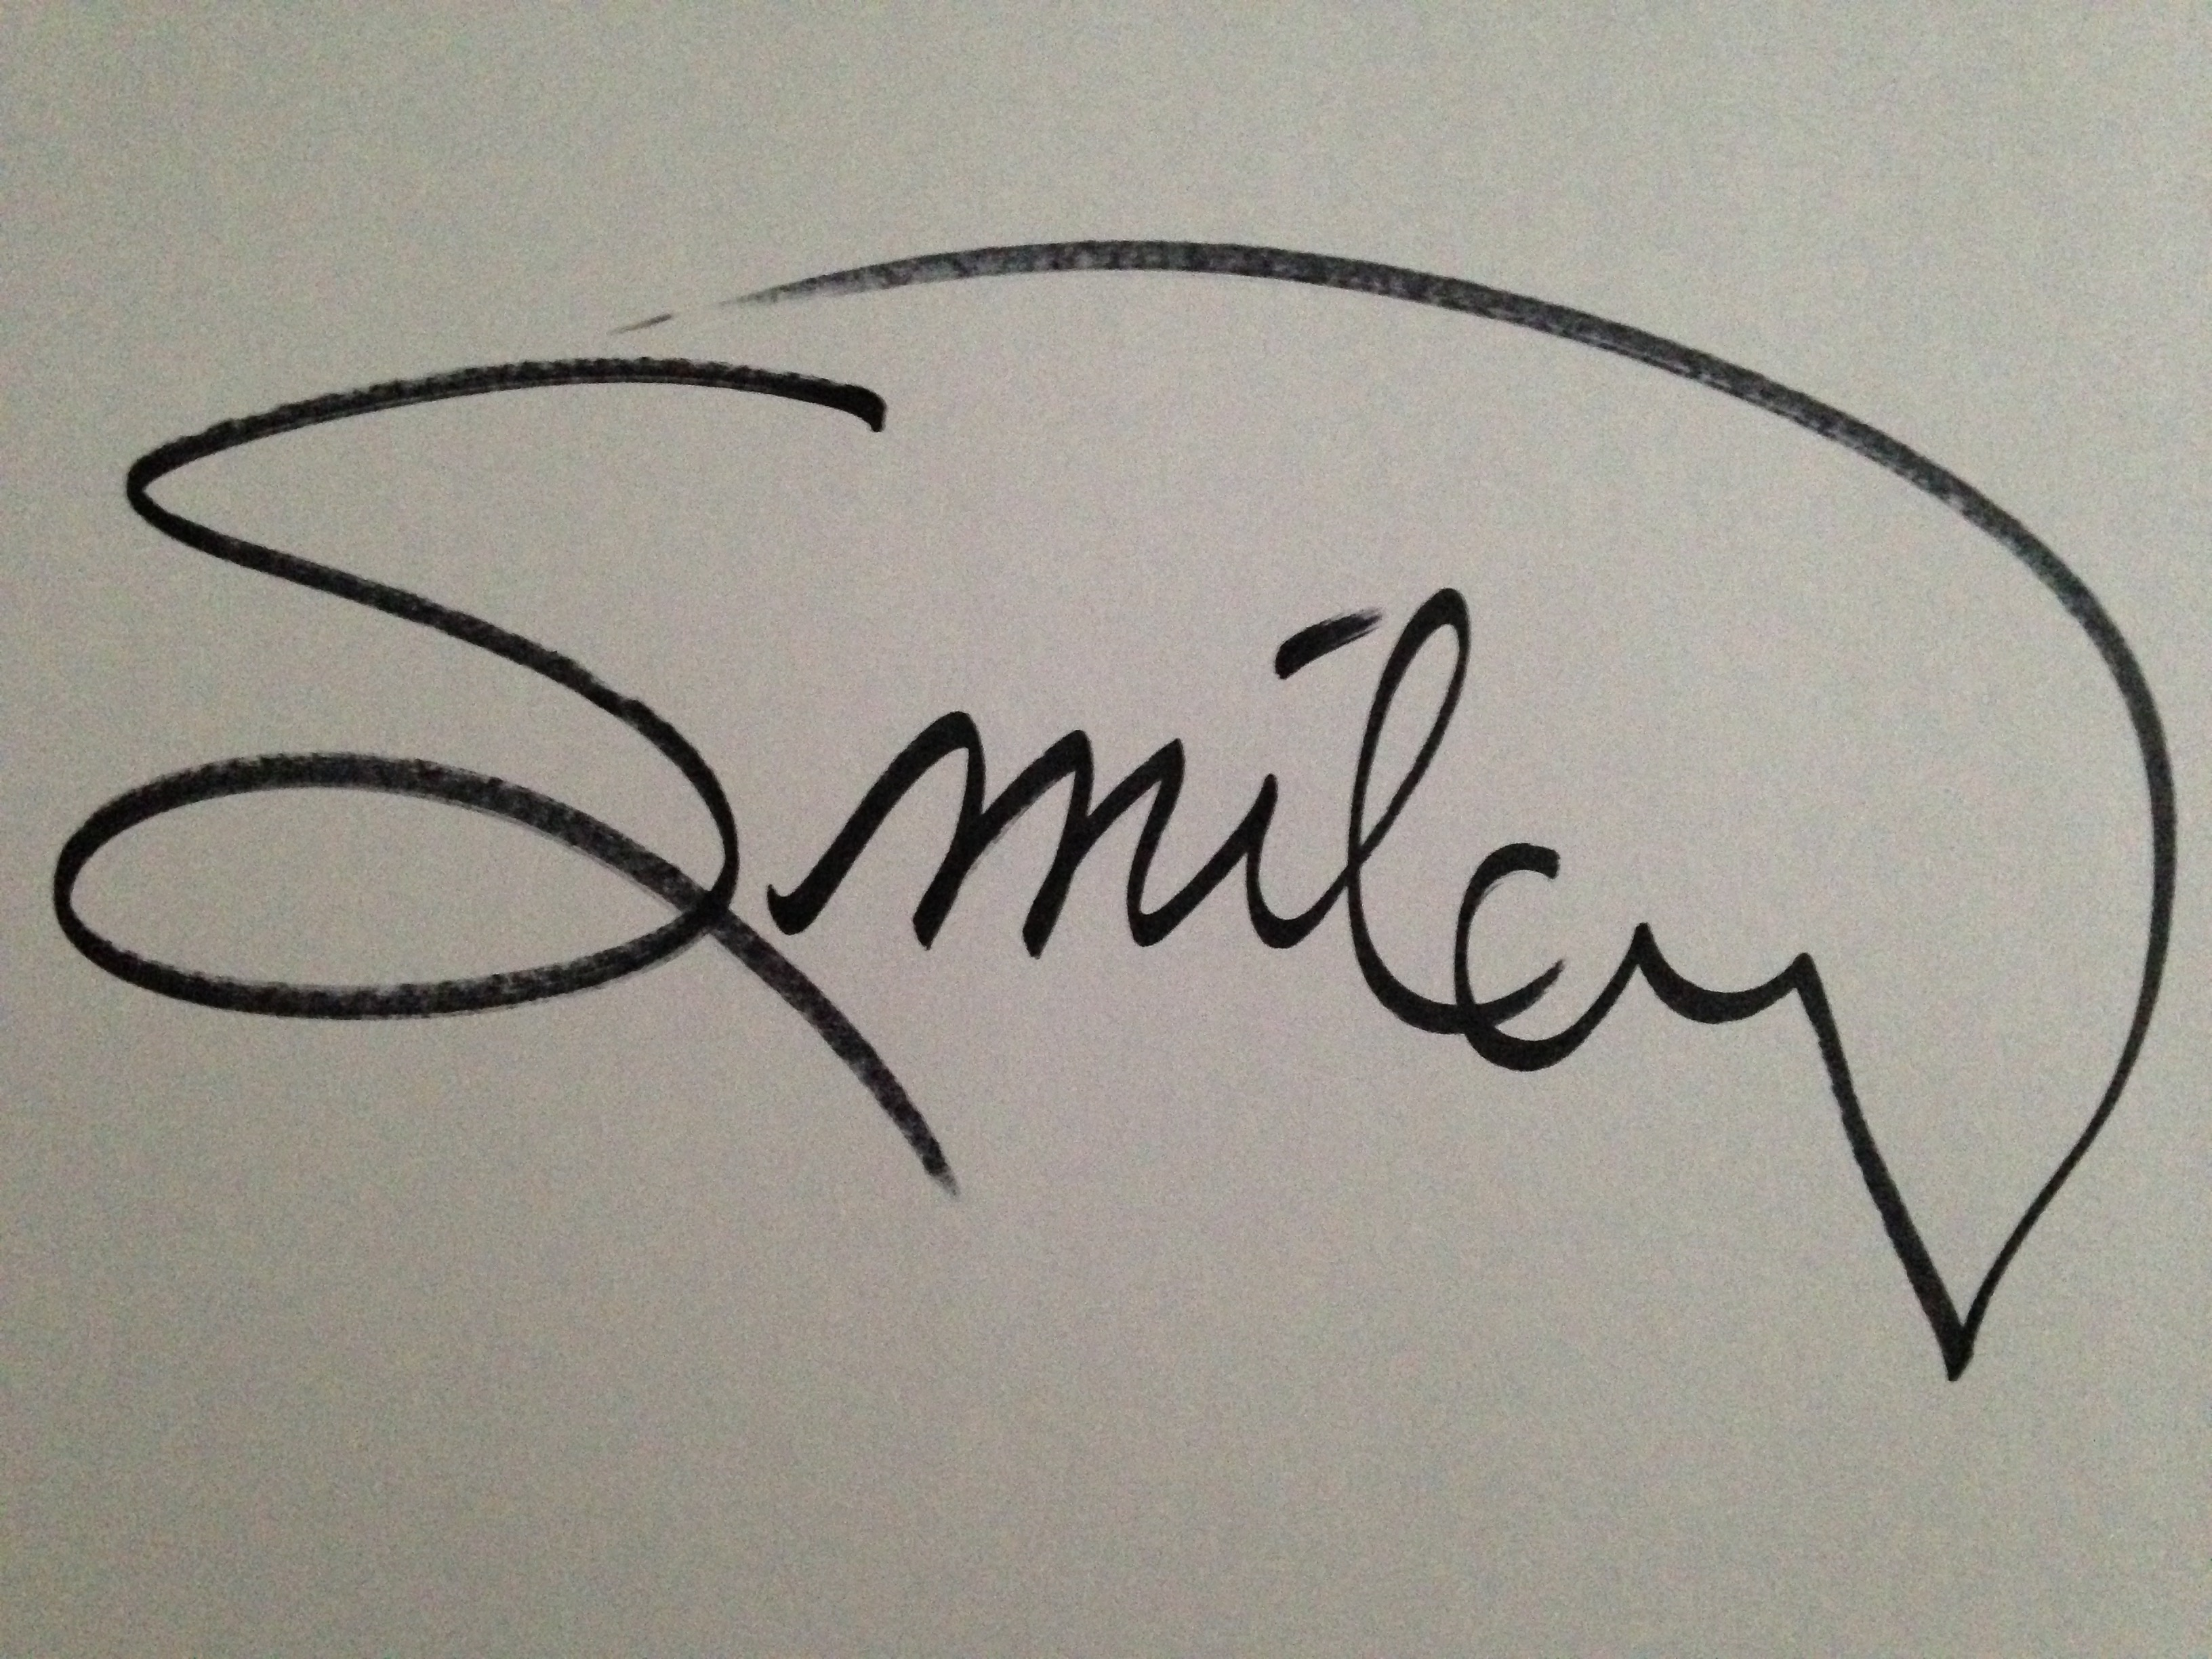 Scott Smiley Signature